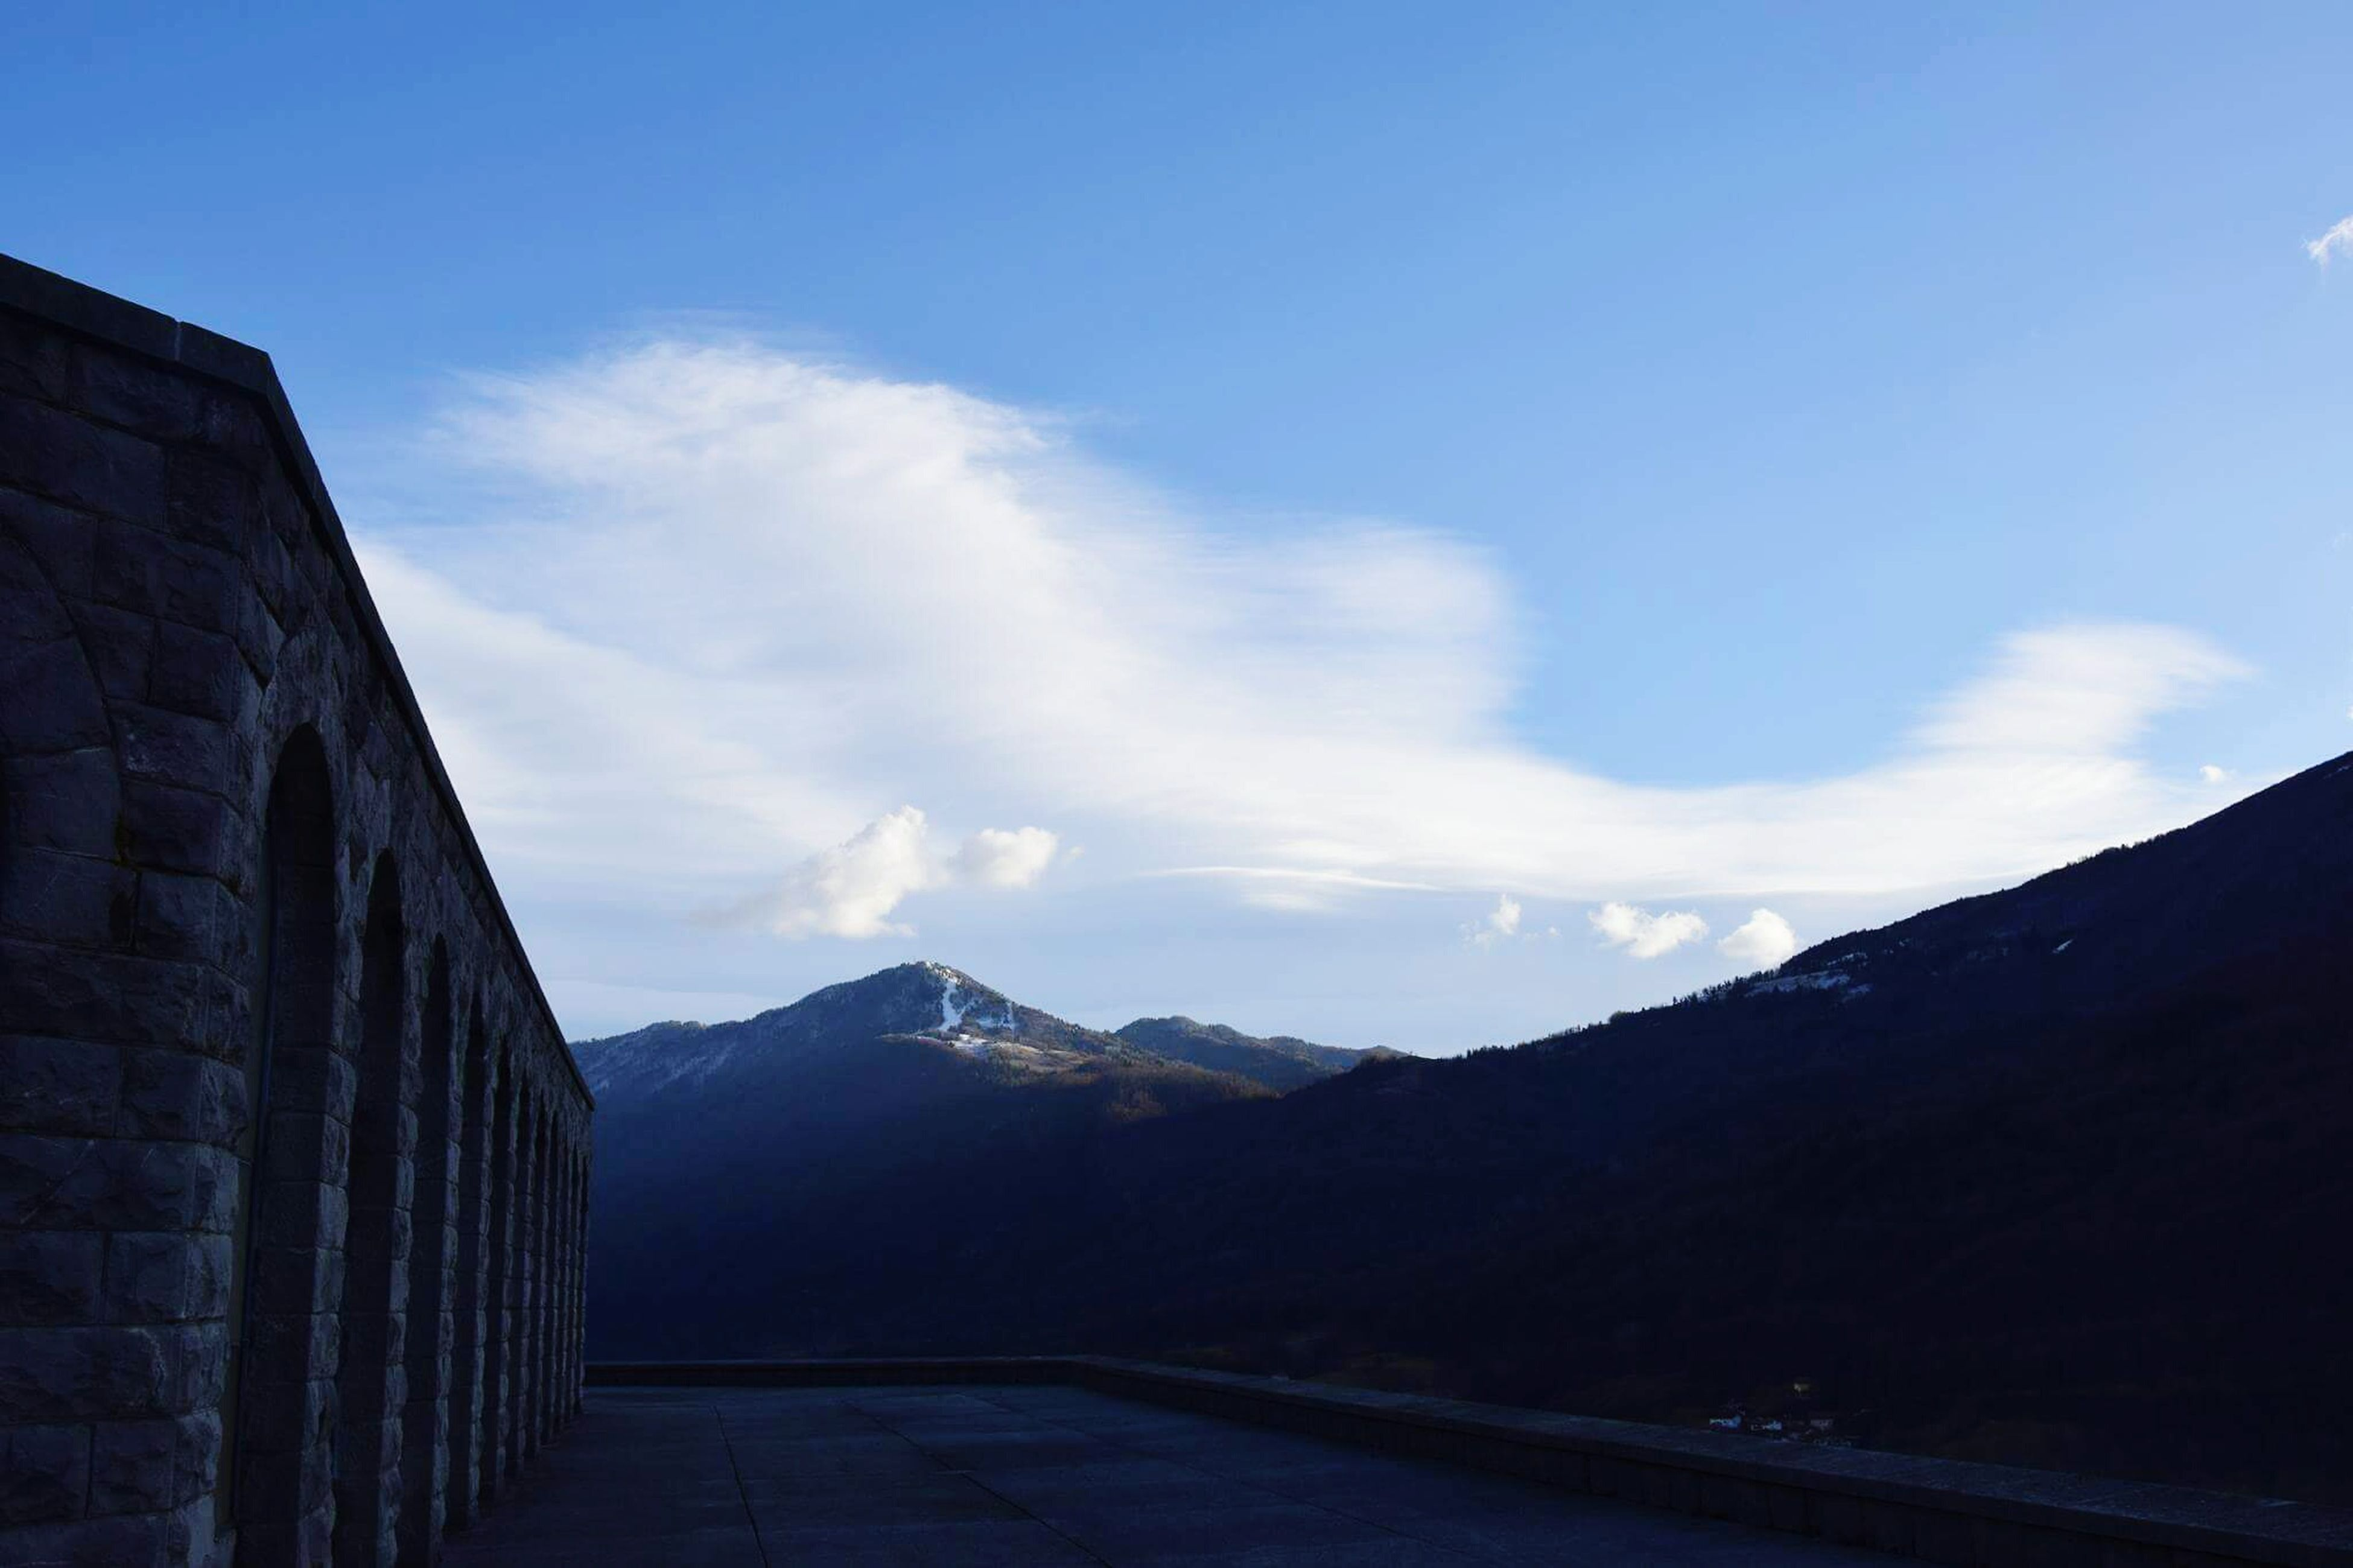 mountain, mountain range, sky, road, the way forward, tranquil scene, tranquility, cloud, cloud - sky, scenics, transportation, landscape, beauty in nature, nature, blue, outdoors, day, no people, non-urban scene, empty